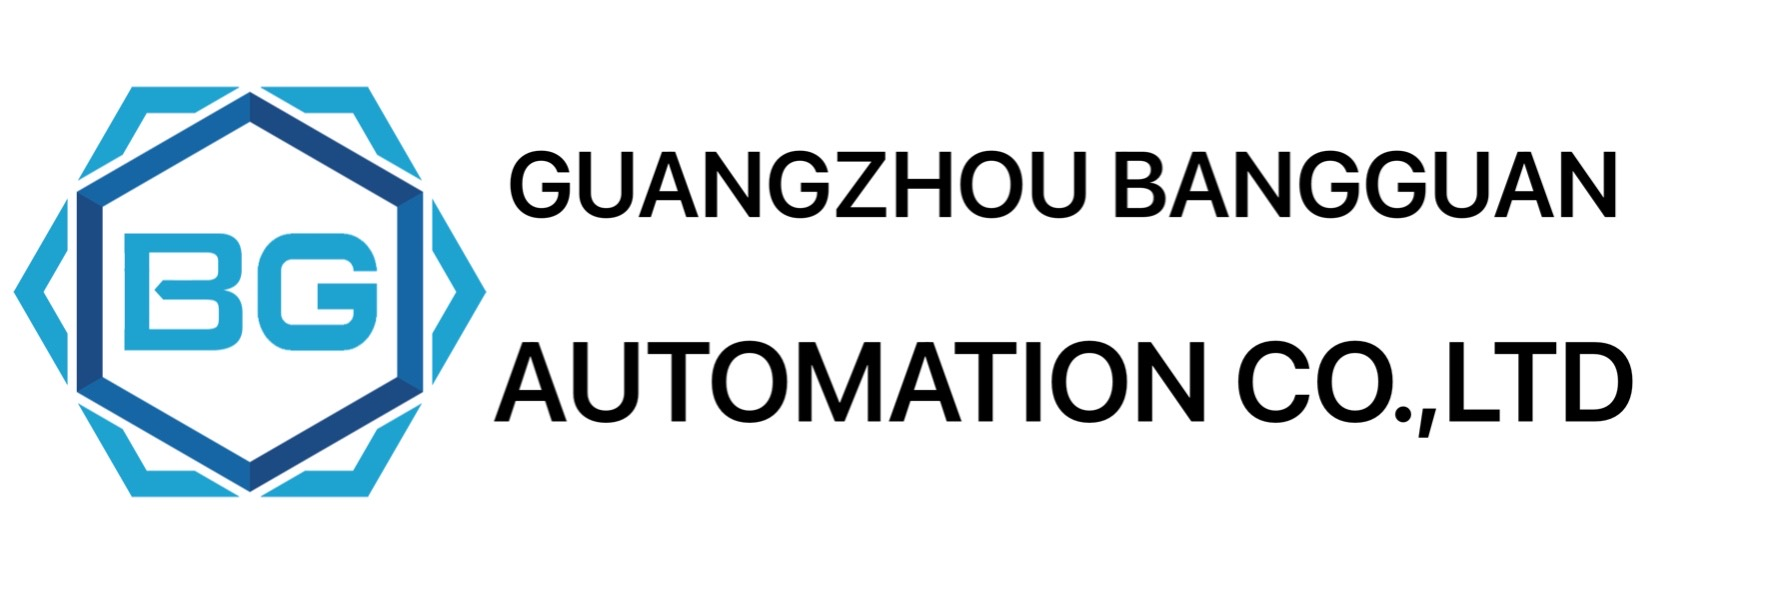 Working efficiency of multifunctional spraying machine - News - Suzhou BangGuan Automation Co., LTD.